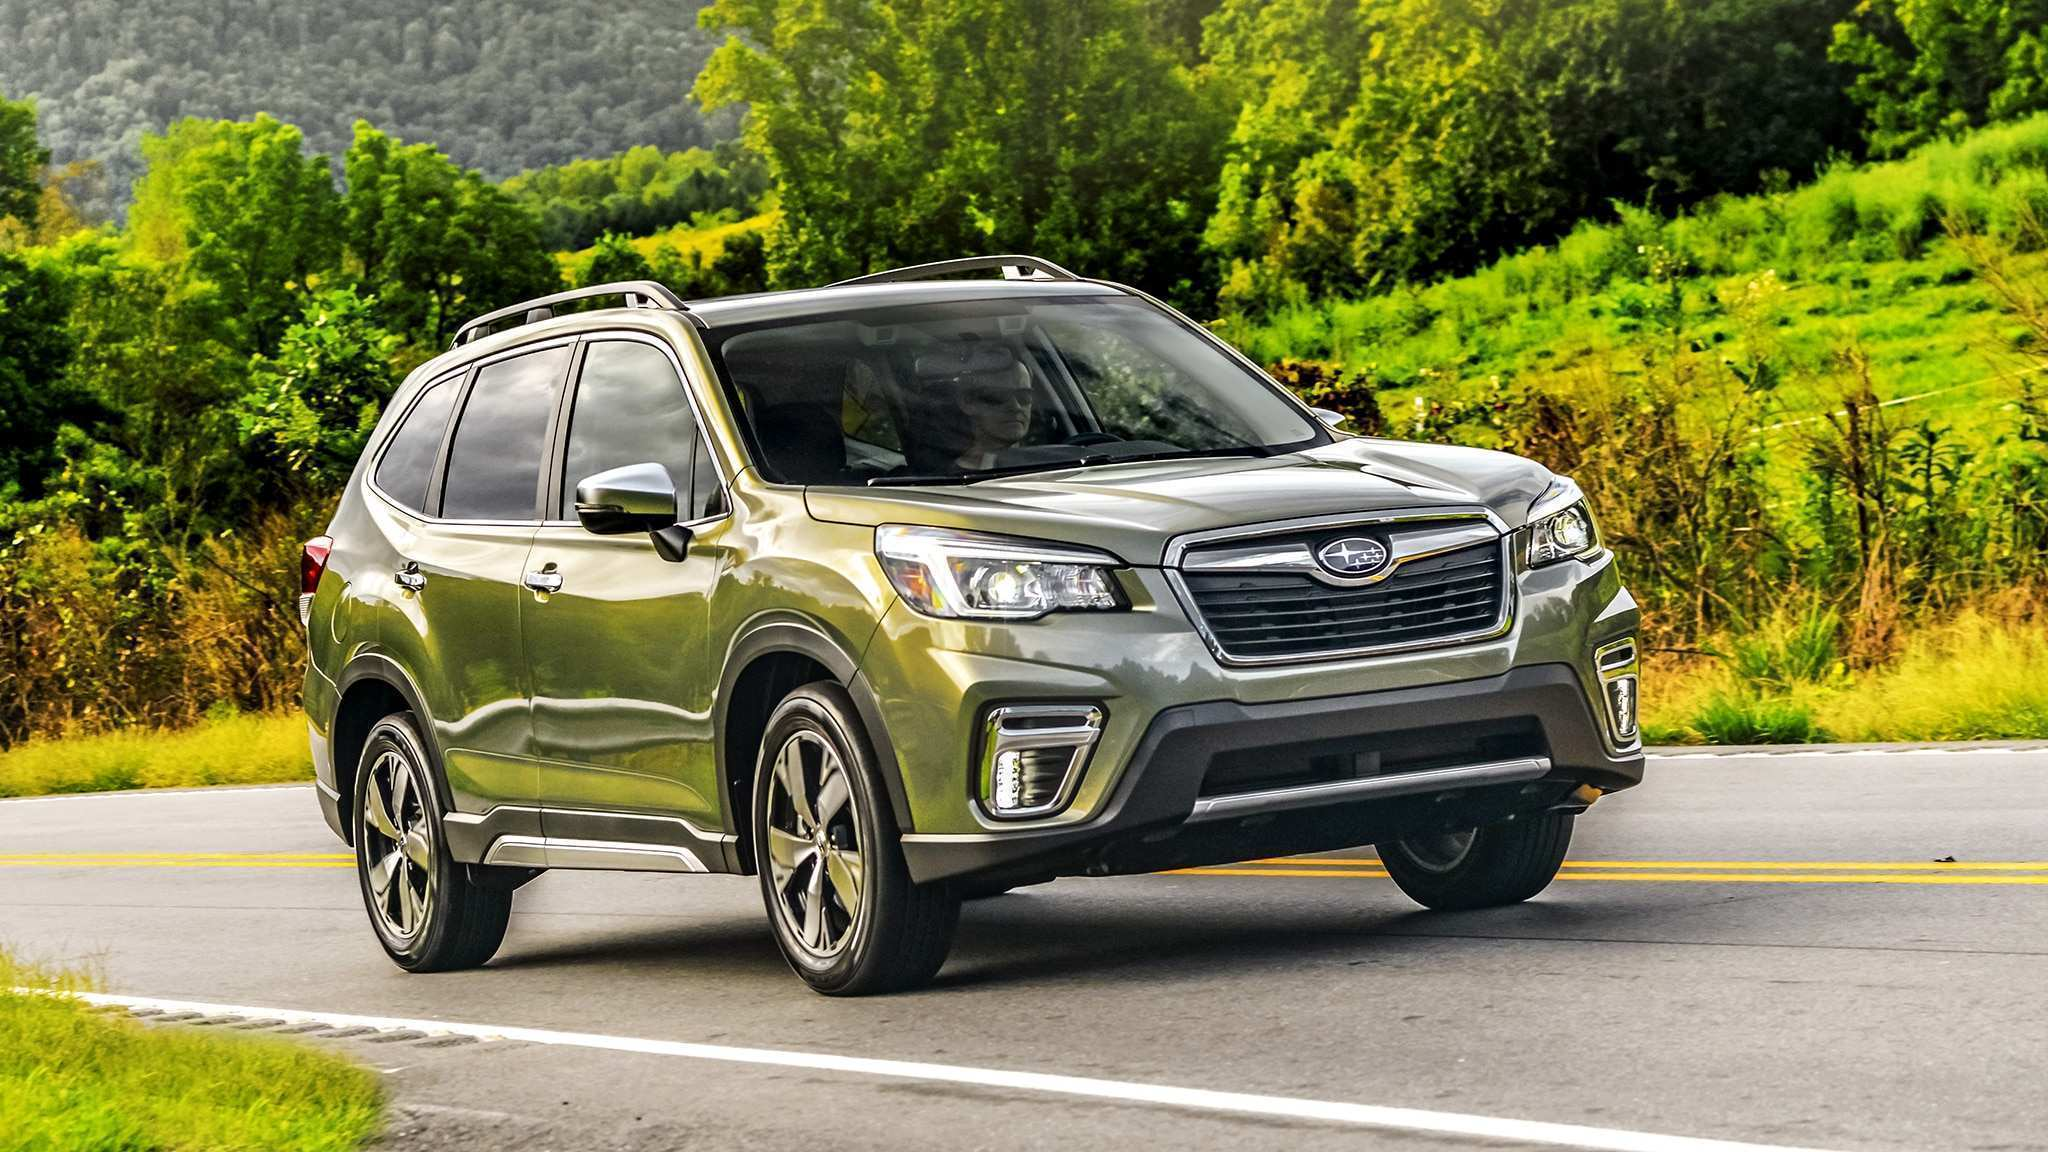 66 Best Review 2019 Subaru Forester Debut Configurations for 2019 Subaru Forester Debut